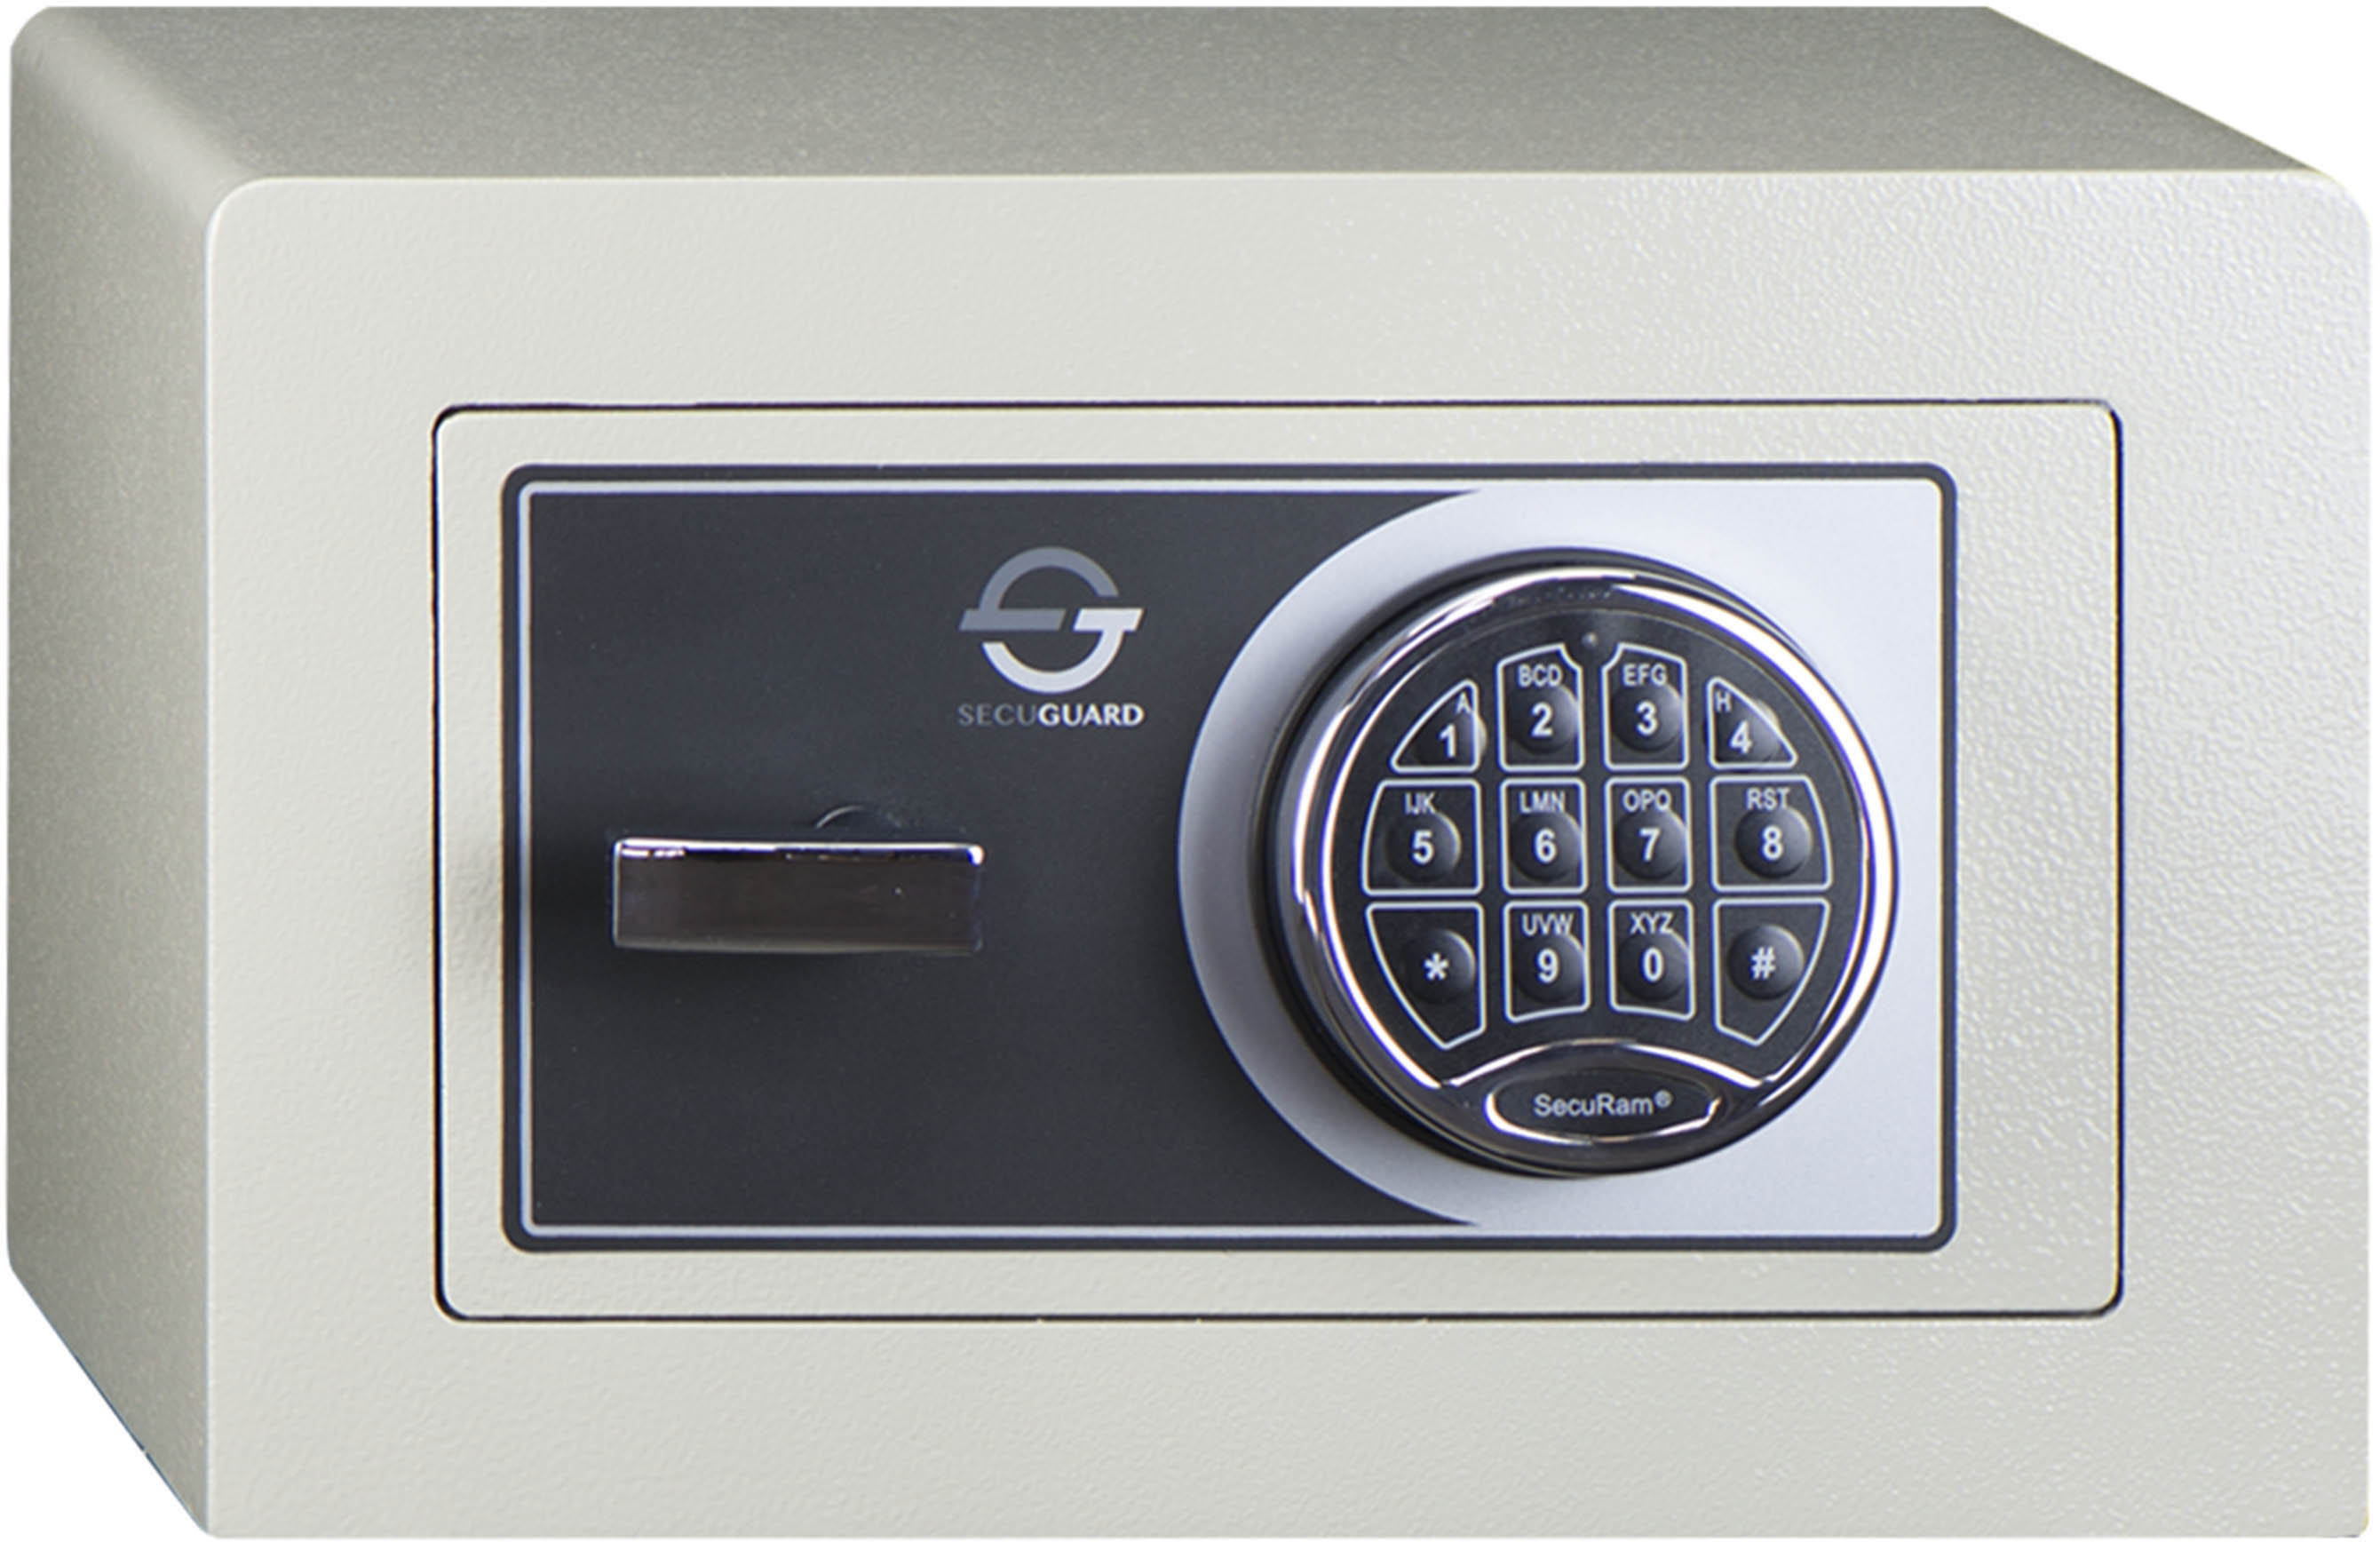 Secuguard FA22E Fire & Burglary resistant safes